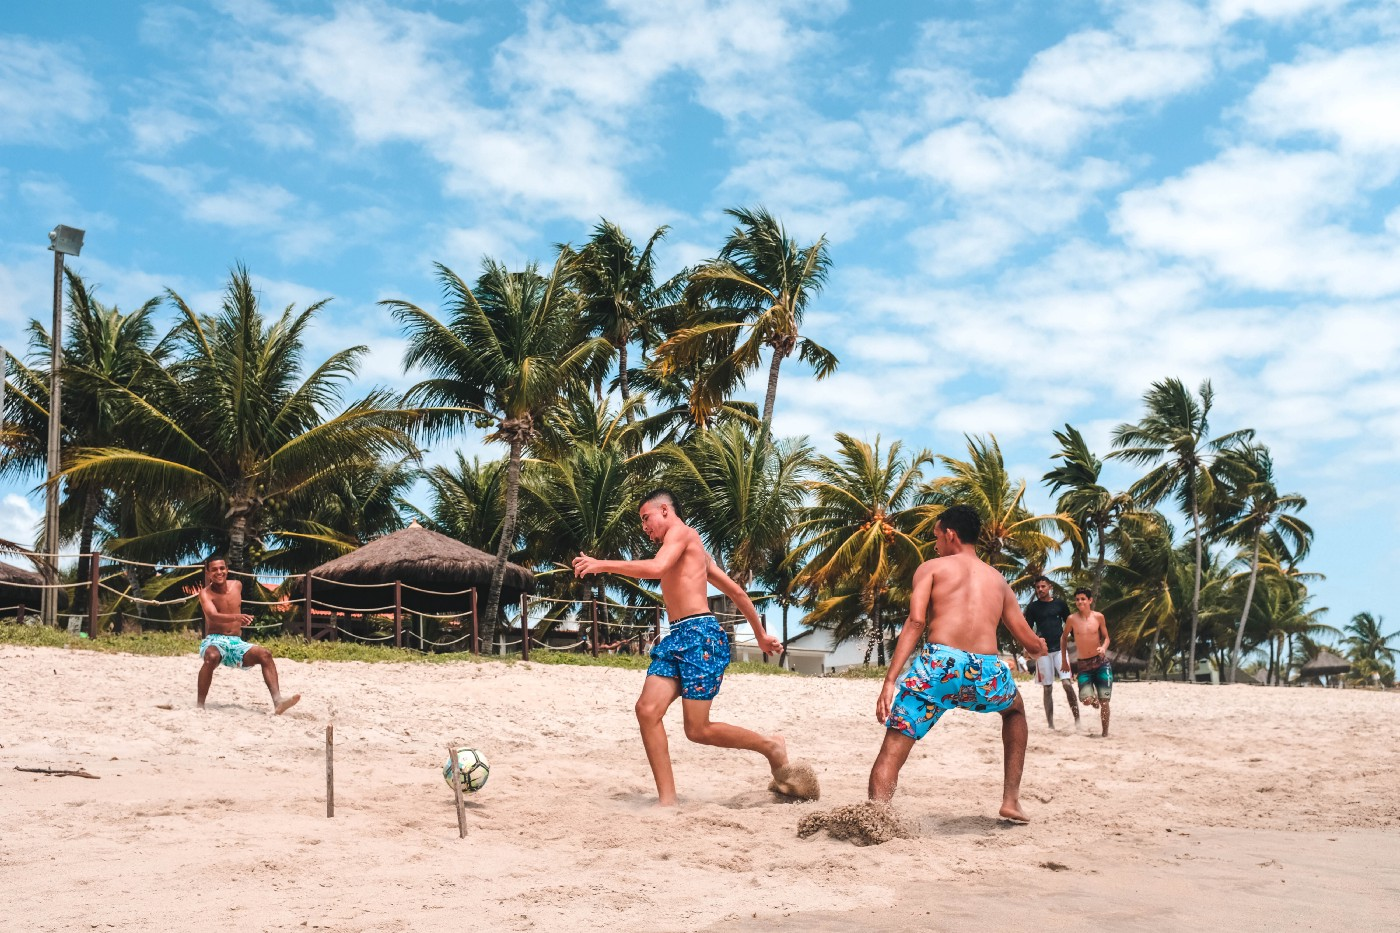 Young men playing soccer on a beach in Brazil.